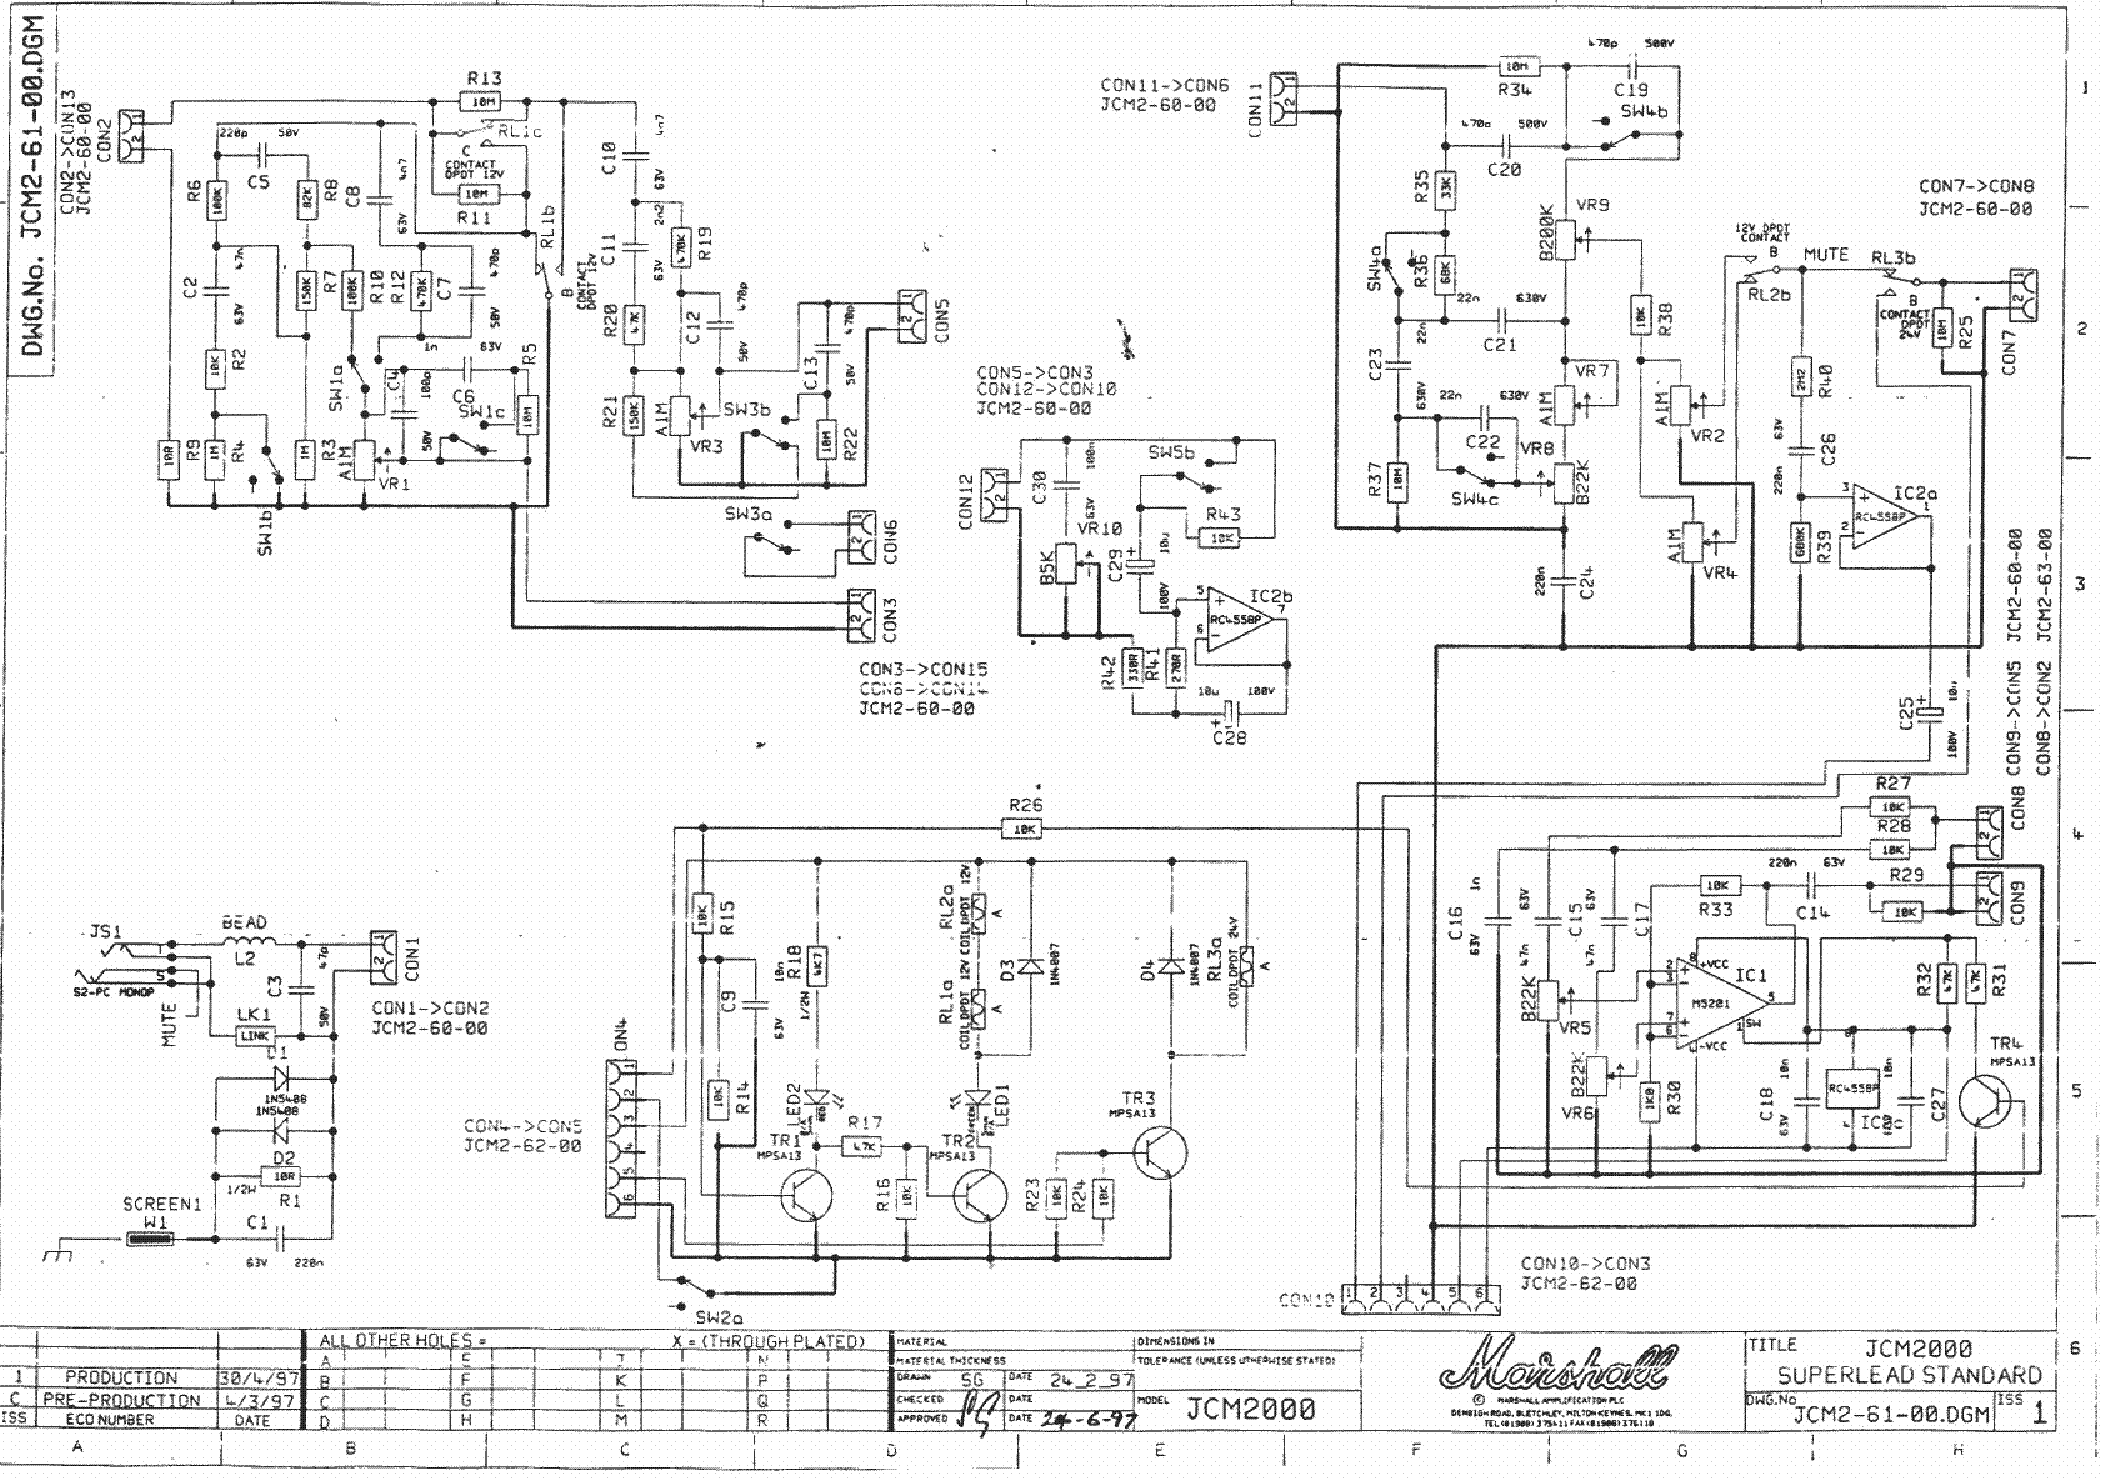 Stratocaster Wiring Diagram 5 Way Images. Diagram Les Paul Wiring ...